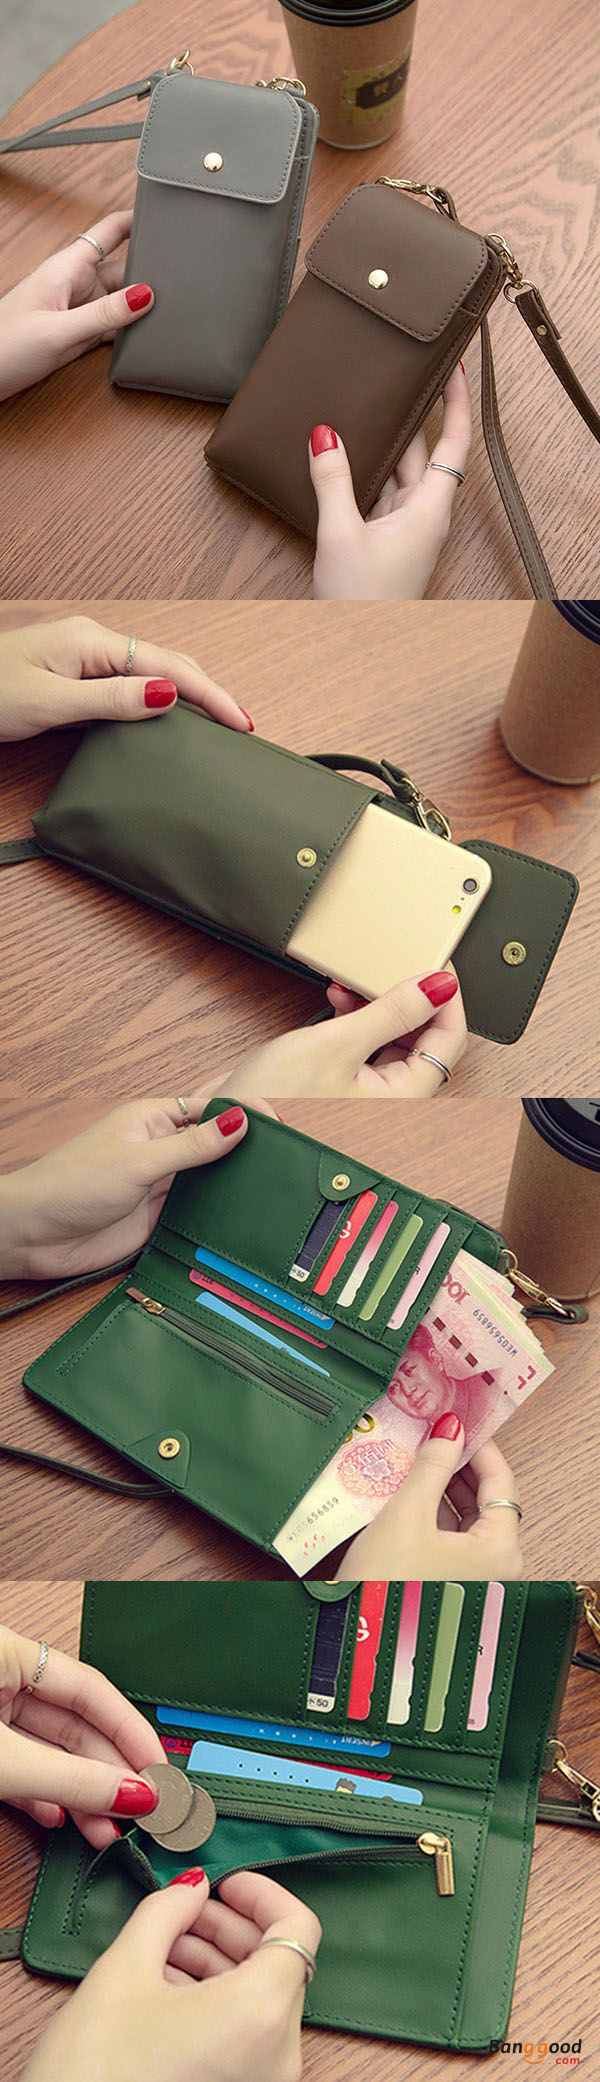 US$18.99+Free shipping. Women Purse, Phone Bag, Wallet, Crossbody Bag Purse, Pure Color, PU Leather, 5.5inch. Color: Black, Gray, Brown, Green. Shop now~